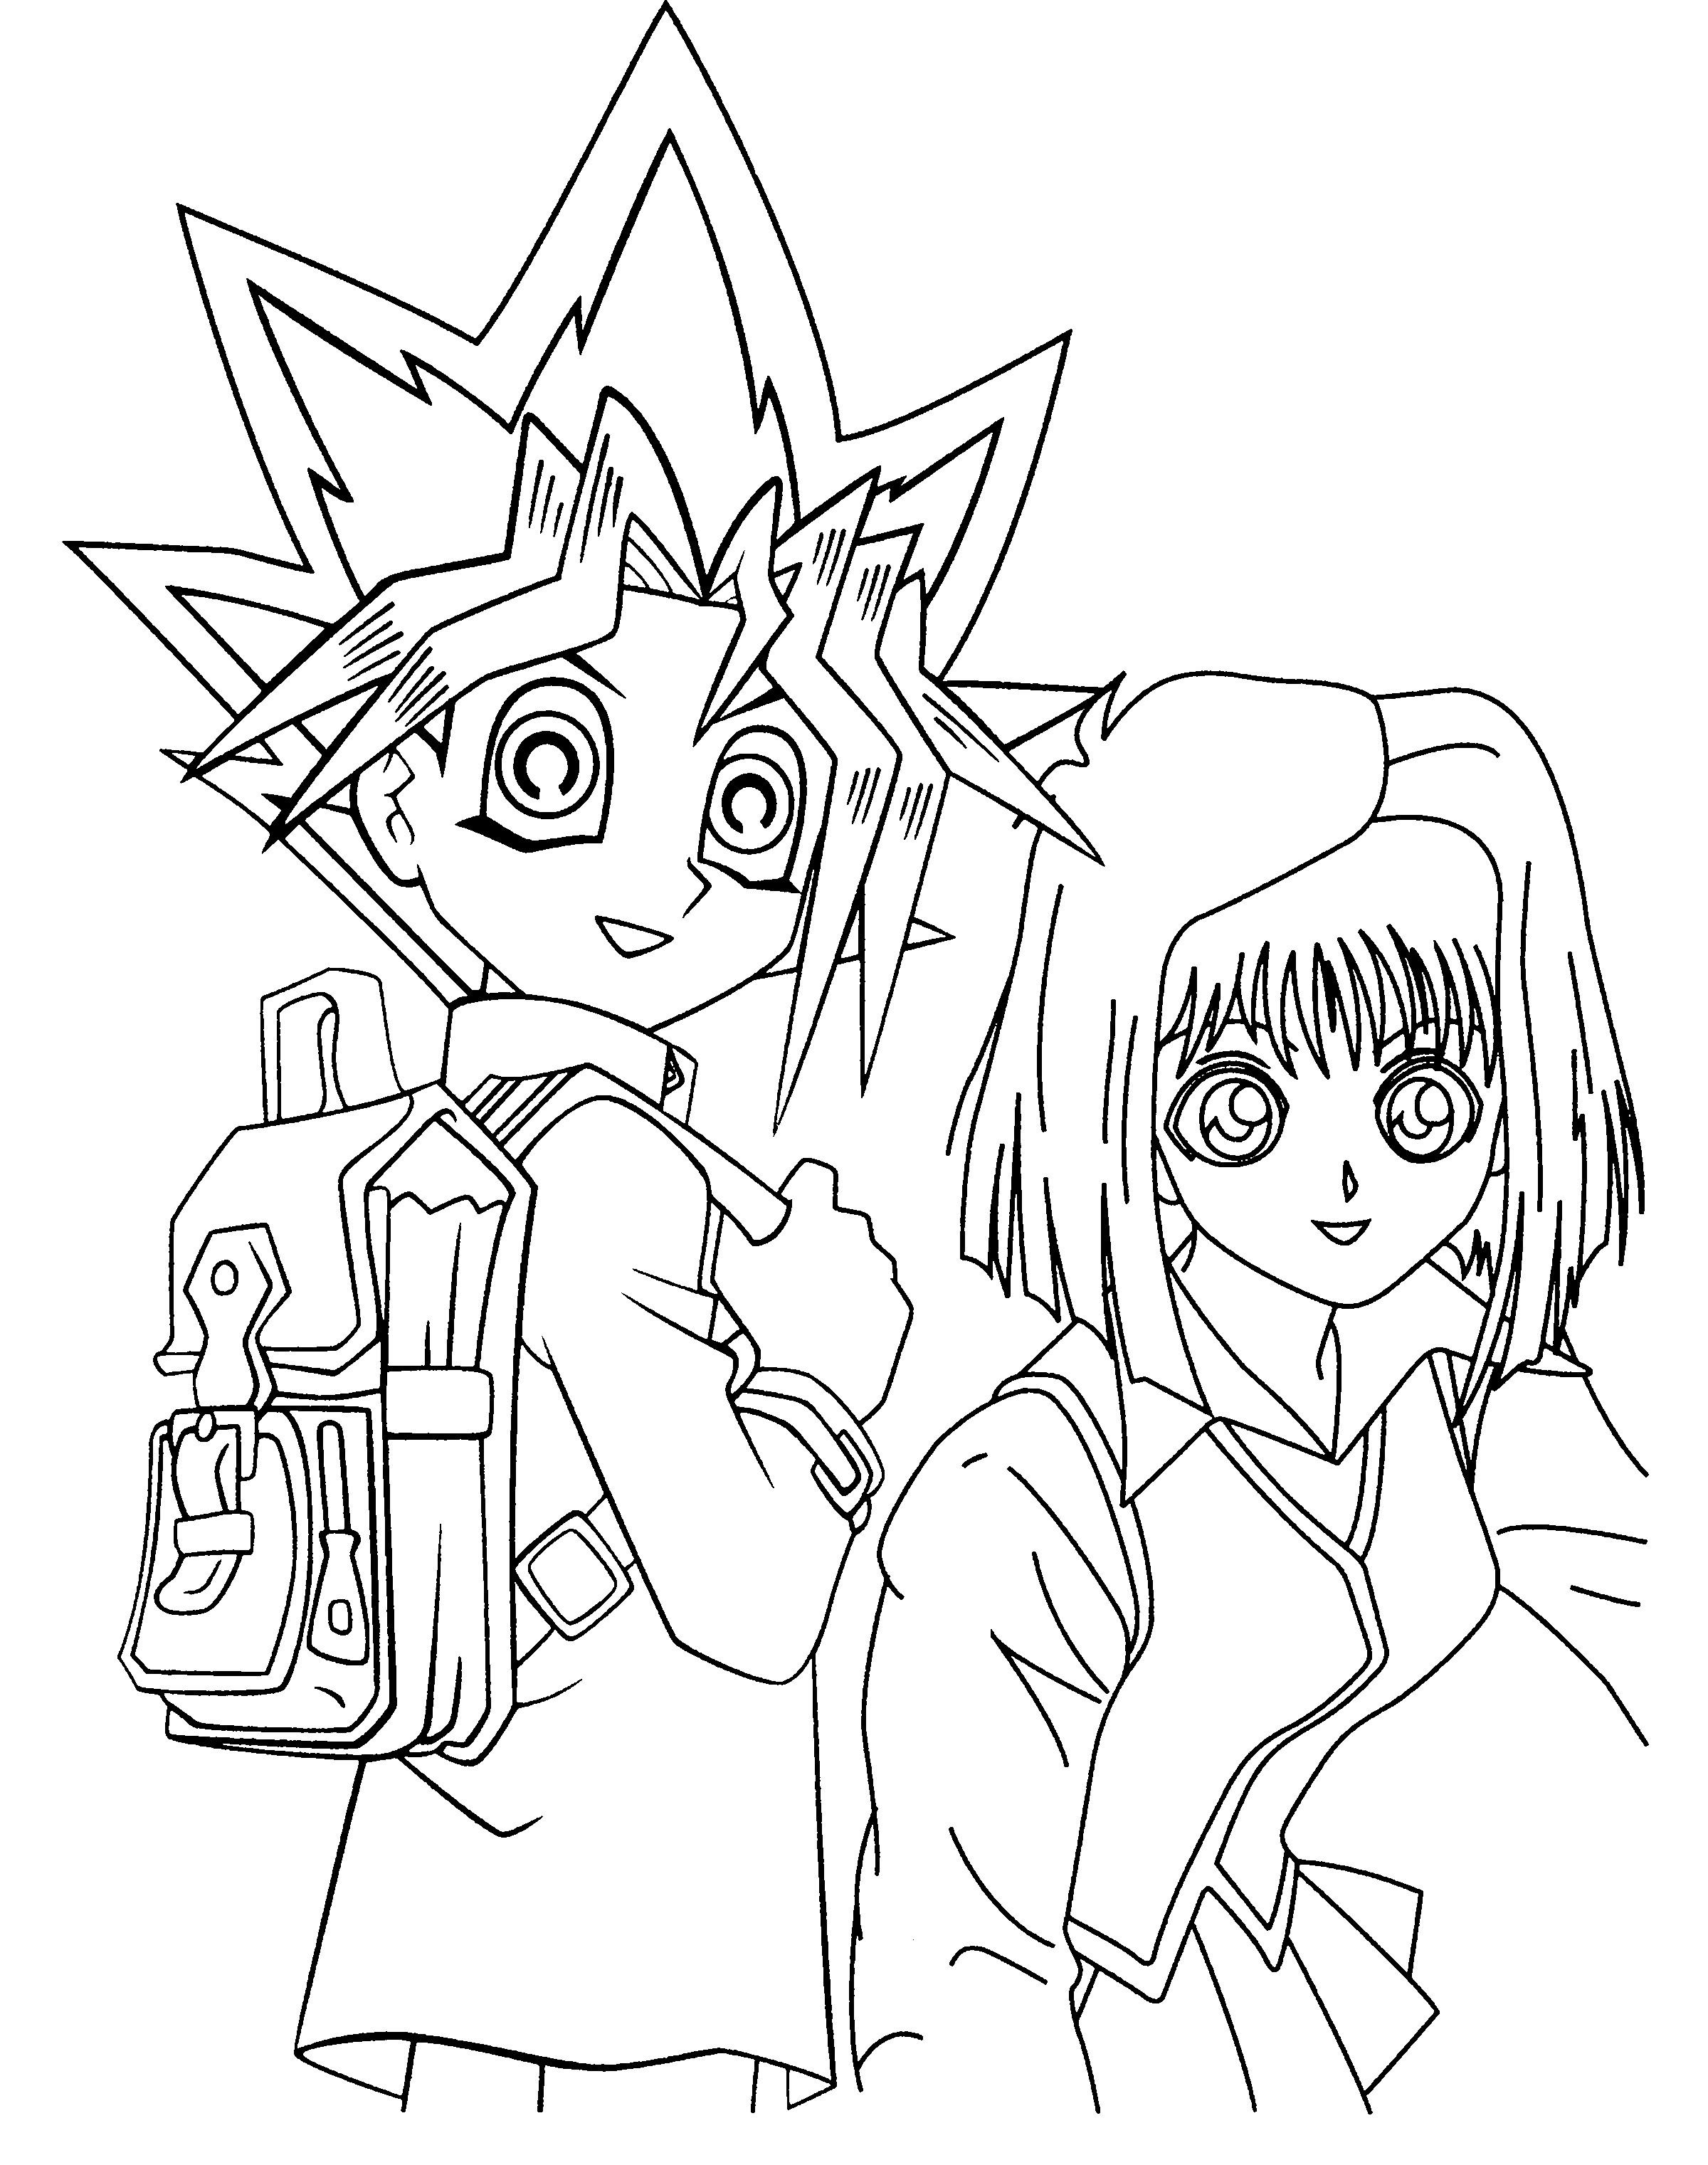 Yu Gi Oh And Tea Coloring Pages Nemo Coloring Pages Cartoon Coloring Pages Coloring Pages